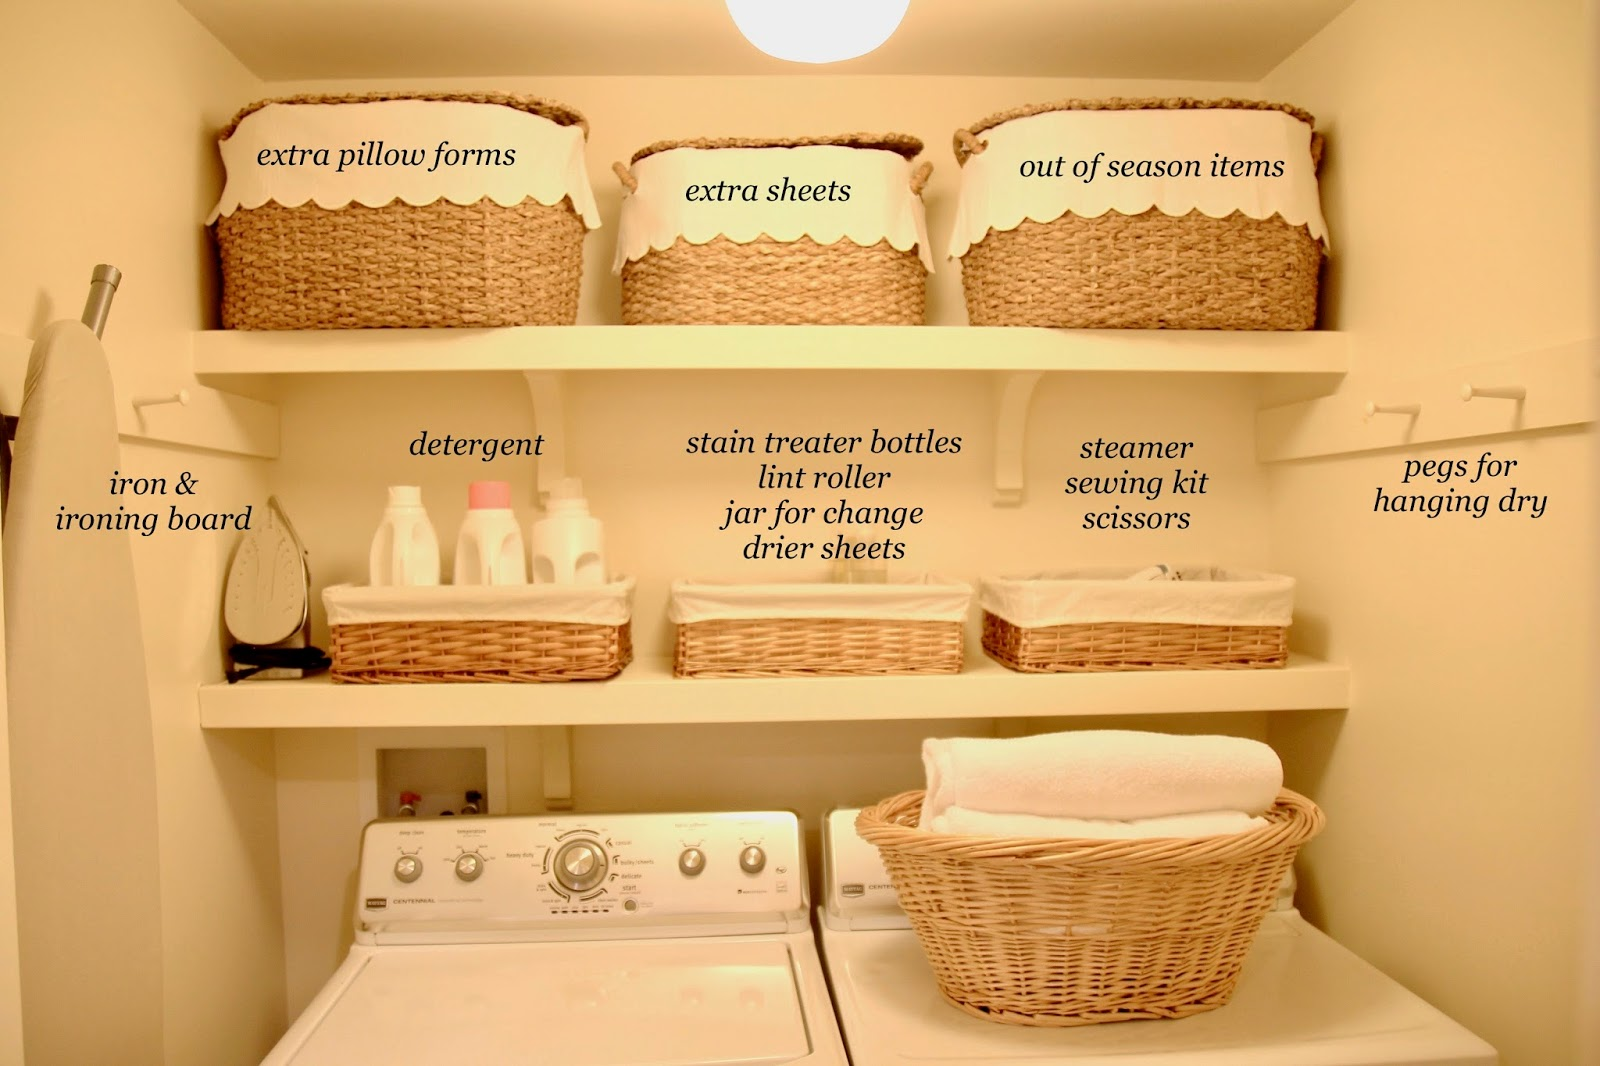 Laundry Room Items Jenny Steffens Hobick Our Little Laundry Room  Creative Tips For